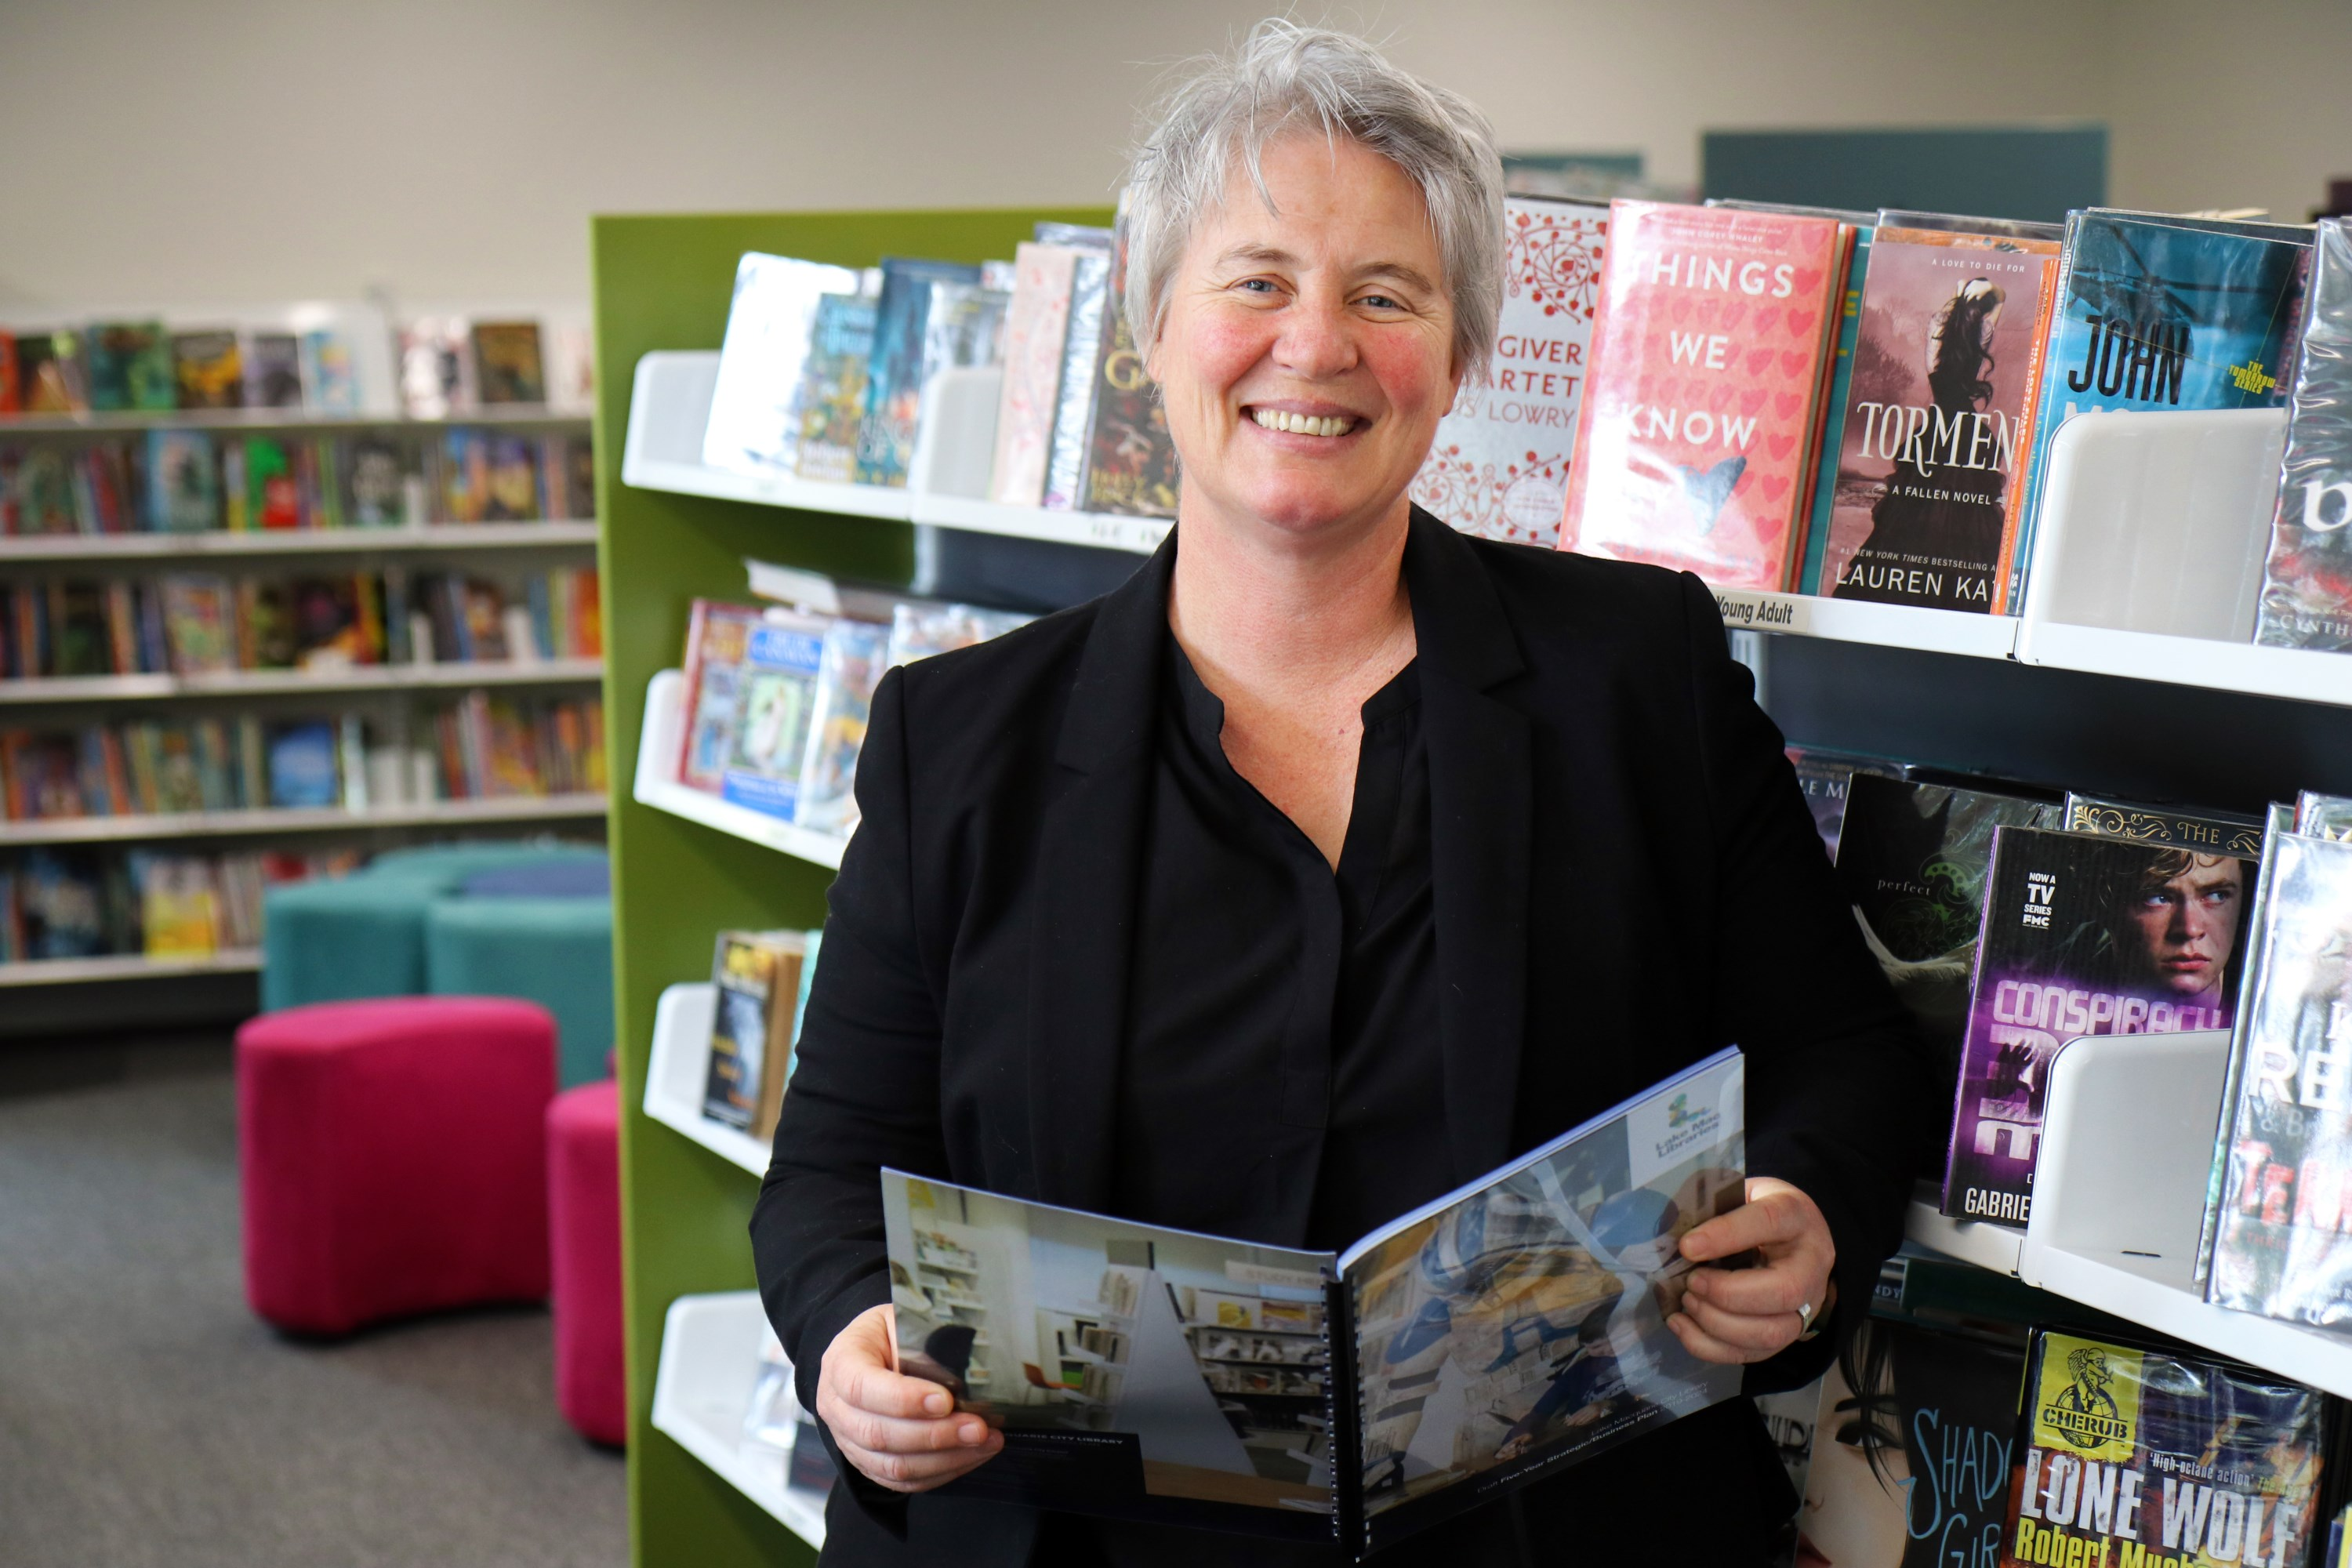 Jacqui hemsley at speers point library  %28custom%29